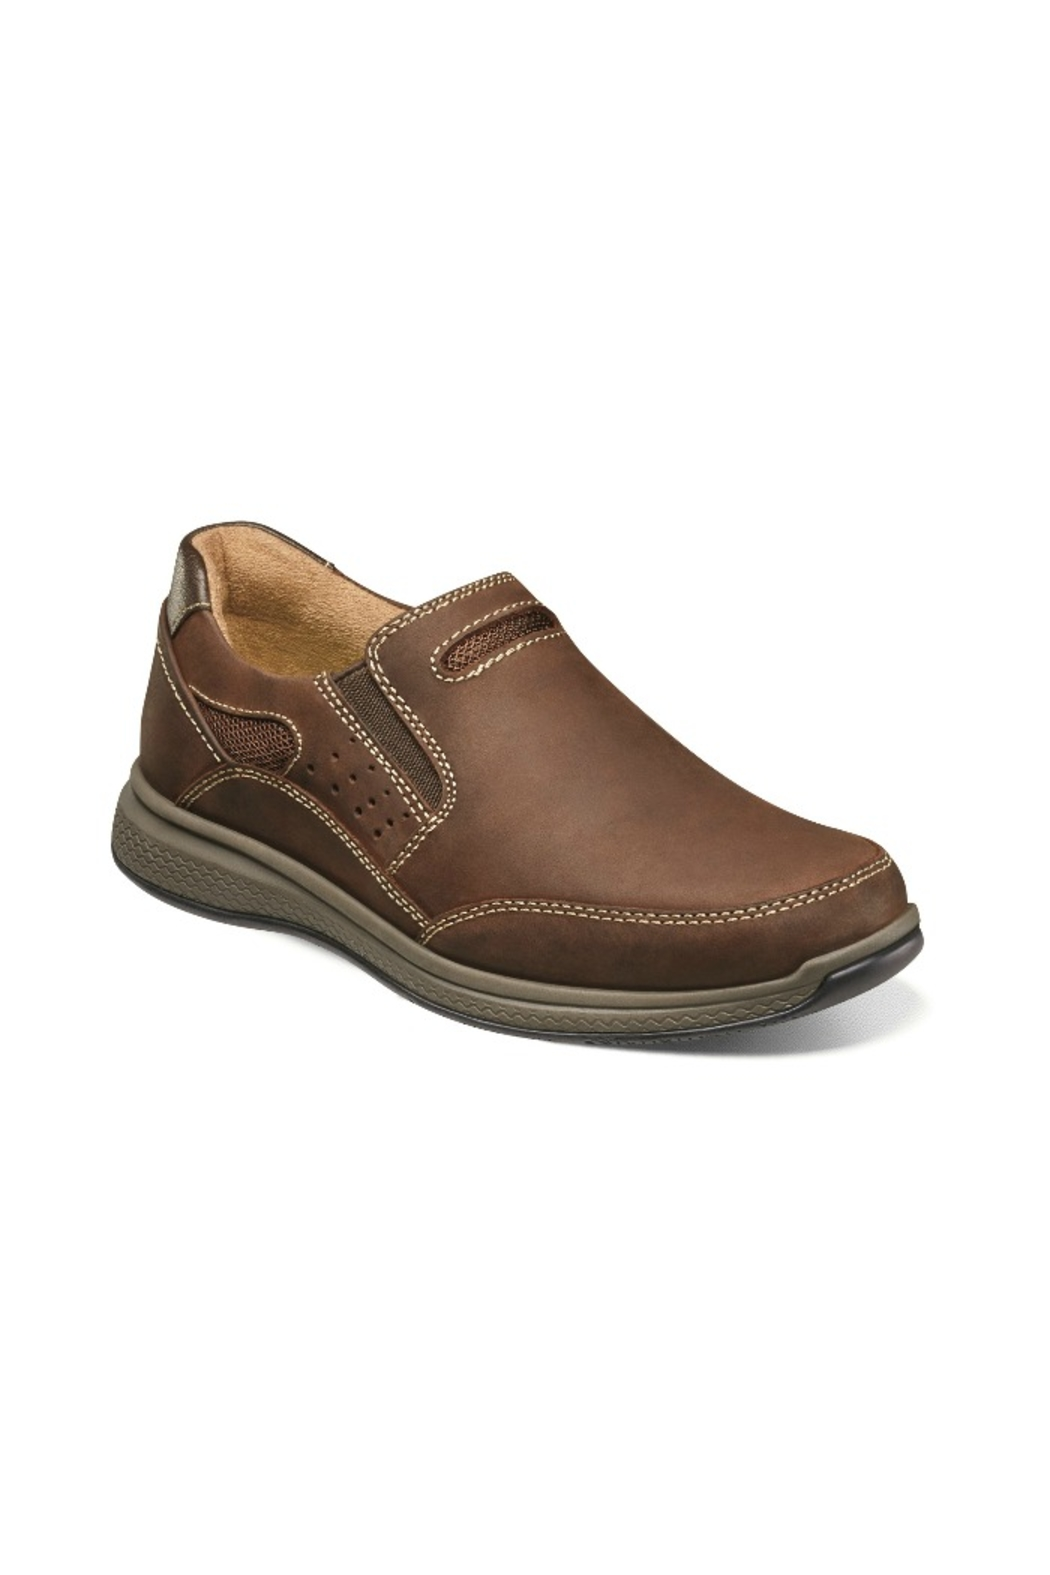 Florsheim Great Lakes Jr. Sports Slip On - Front Cropped Image